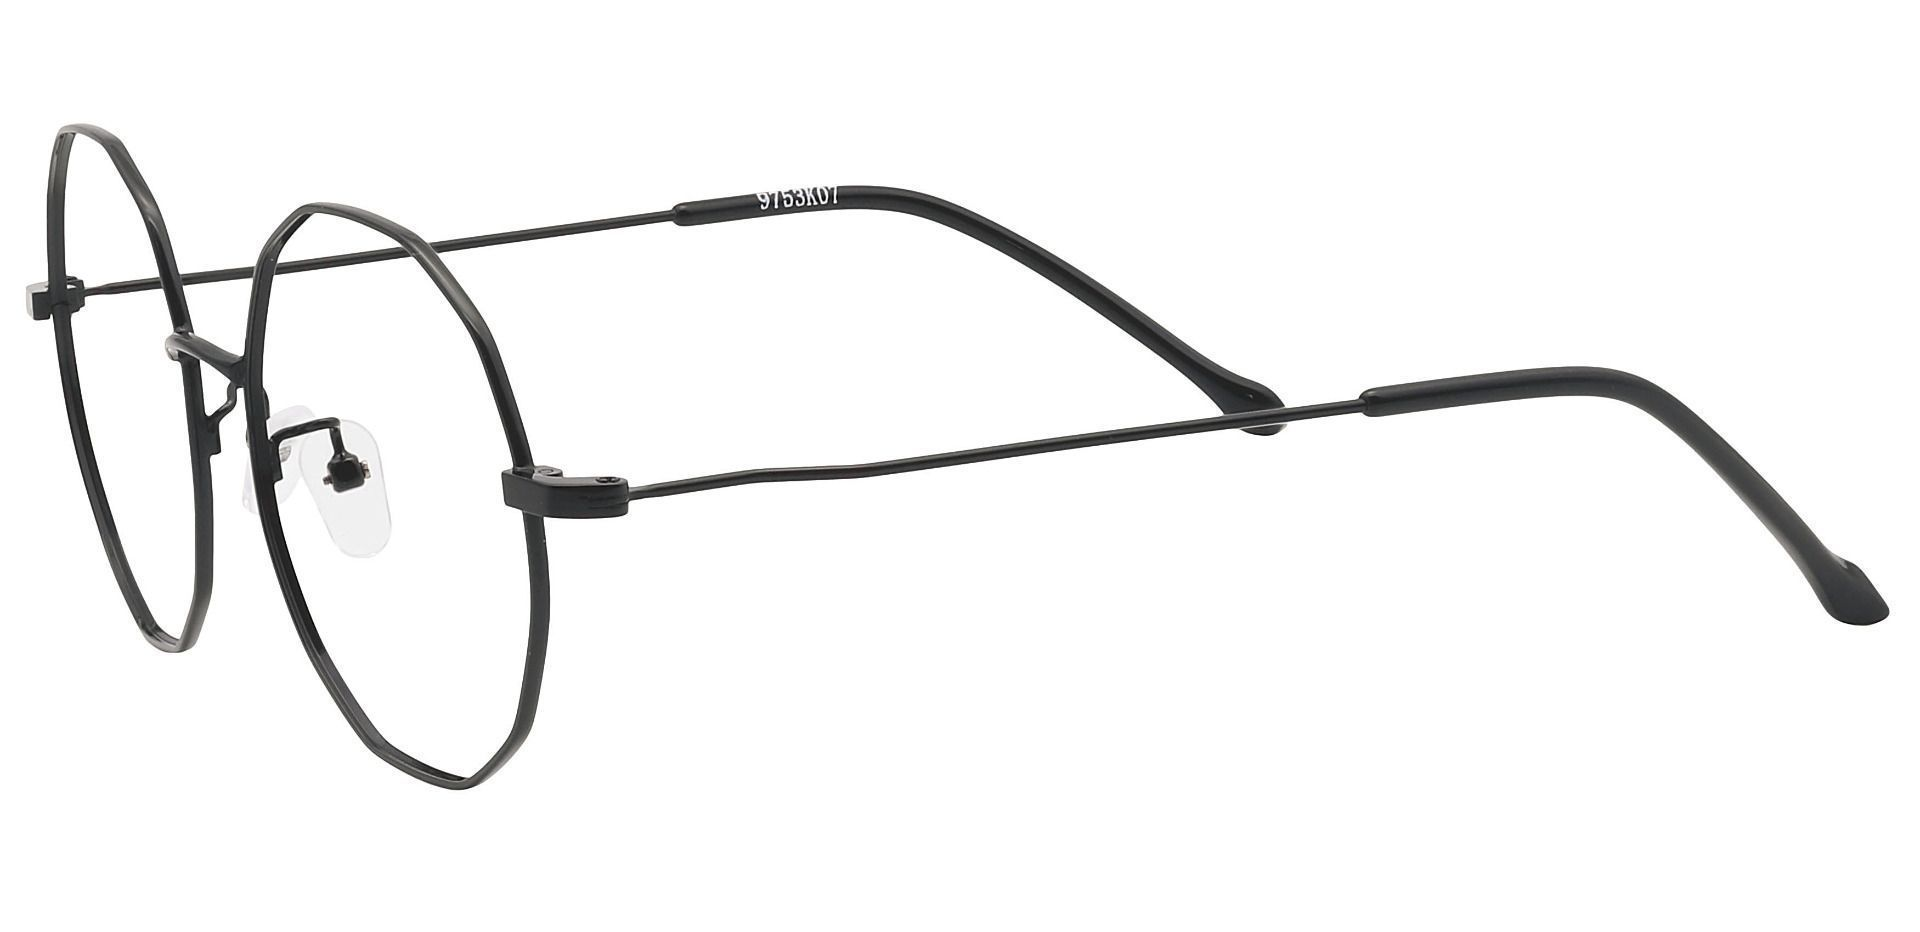 Nyll Geometric Prescription Glasses - Black